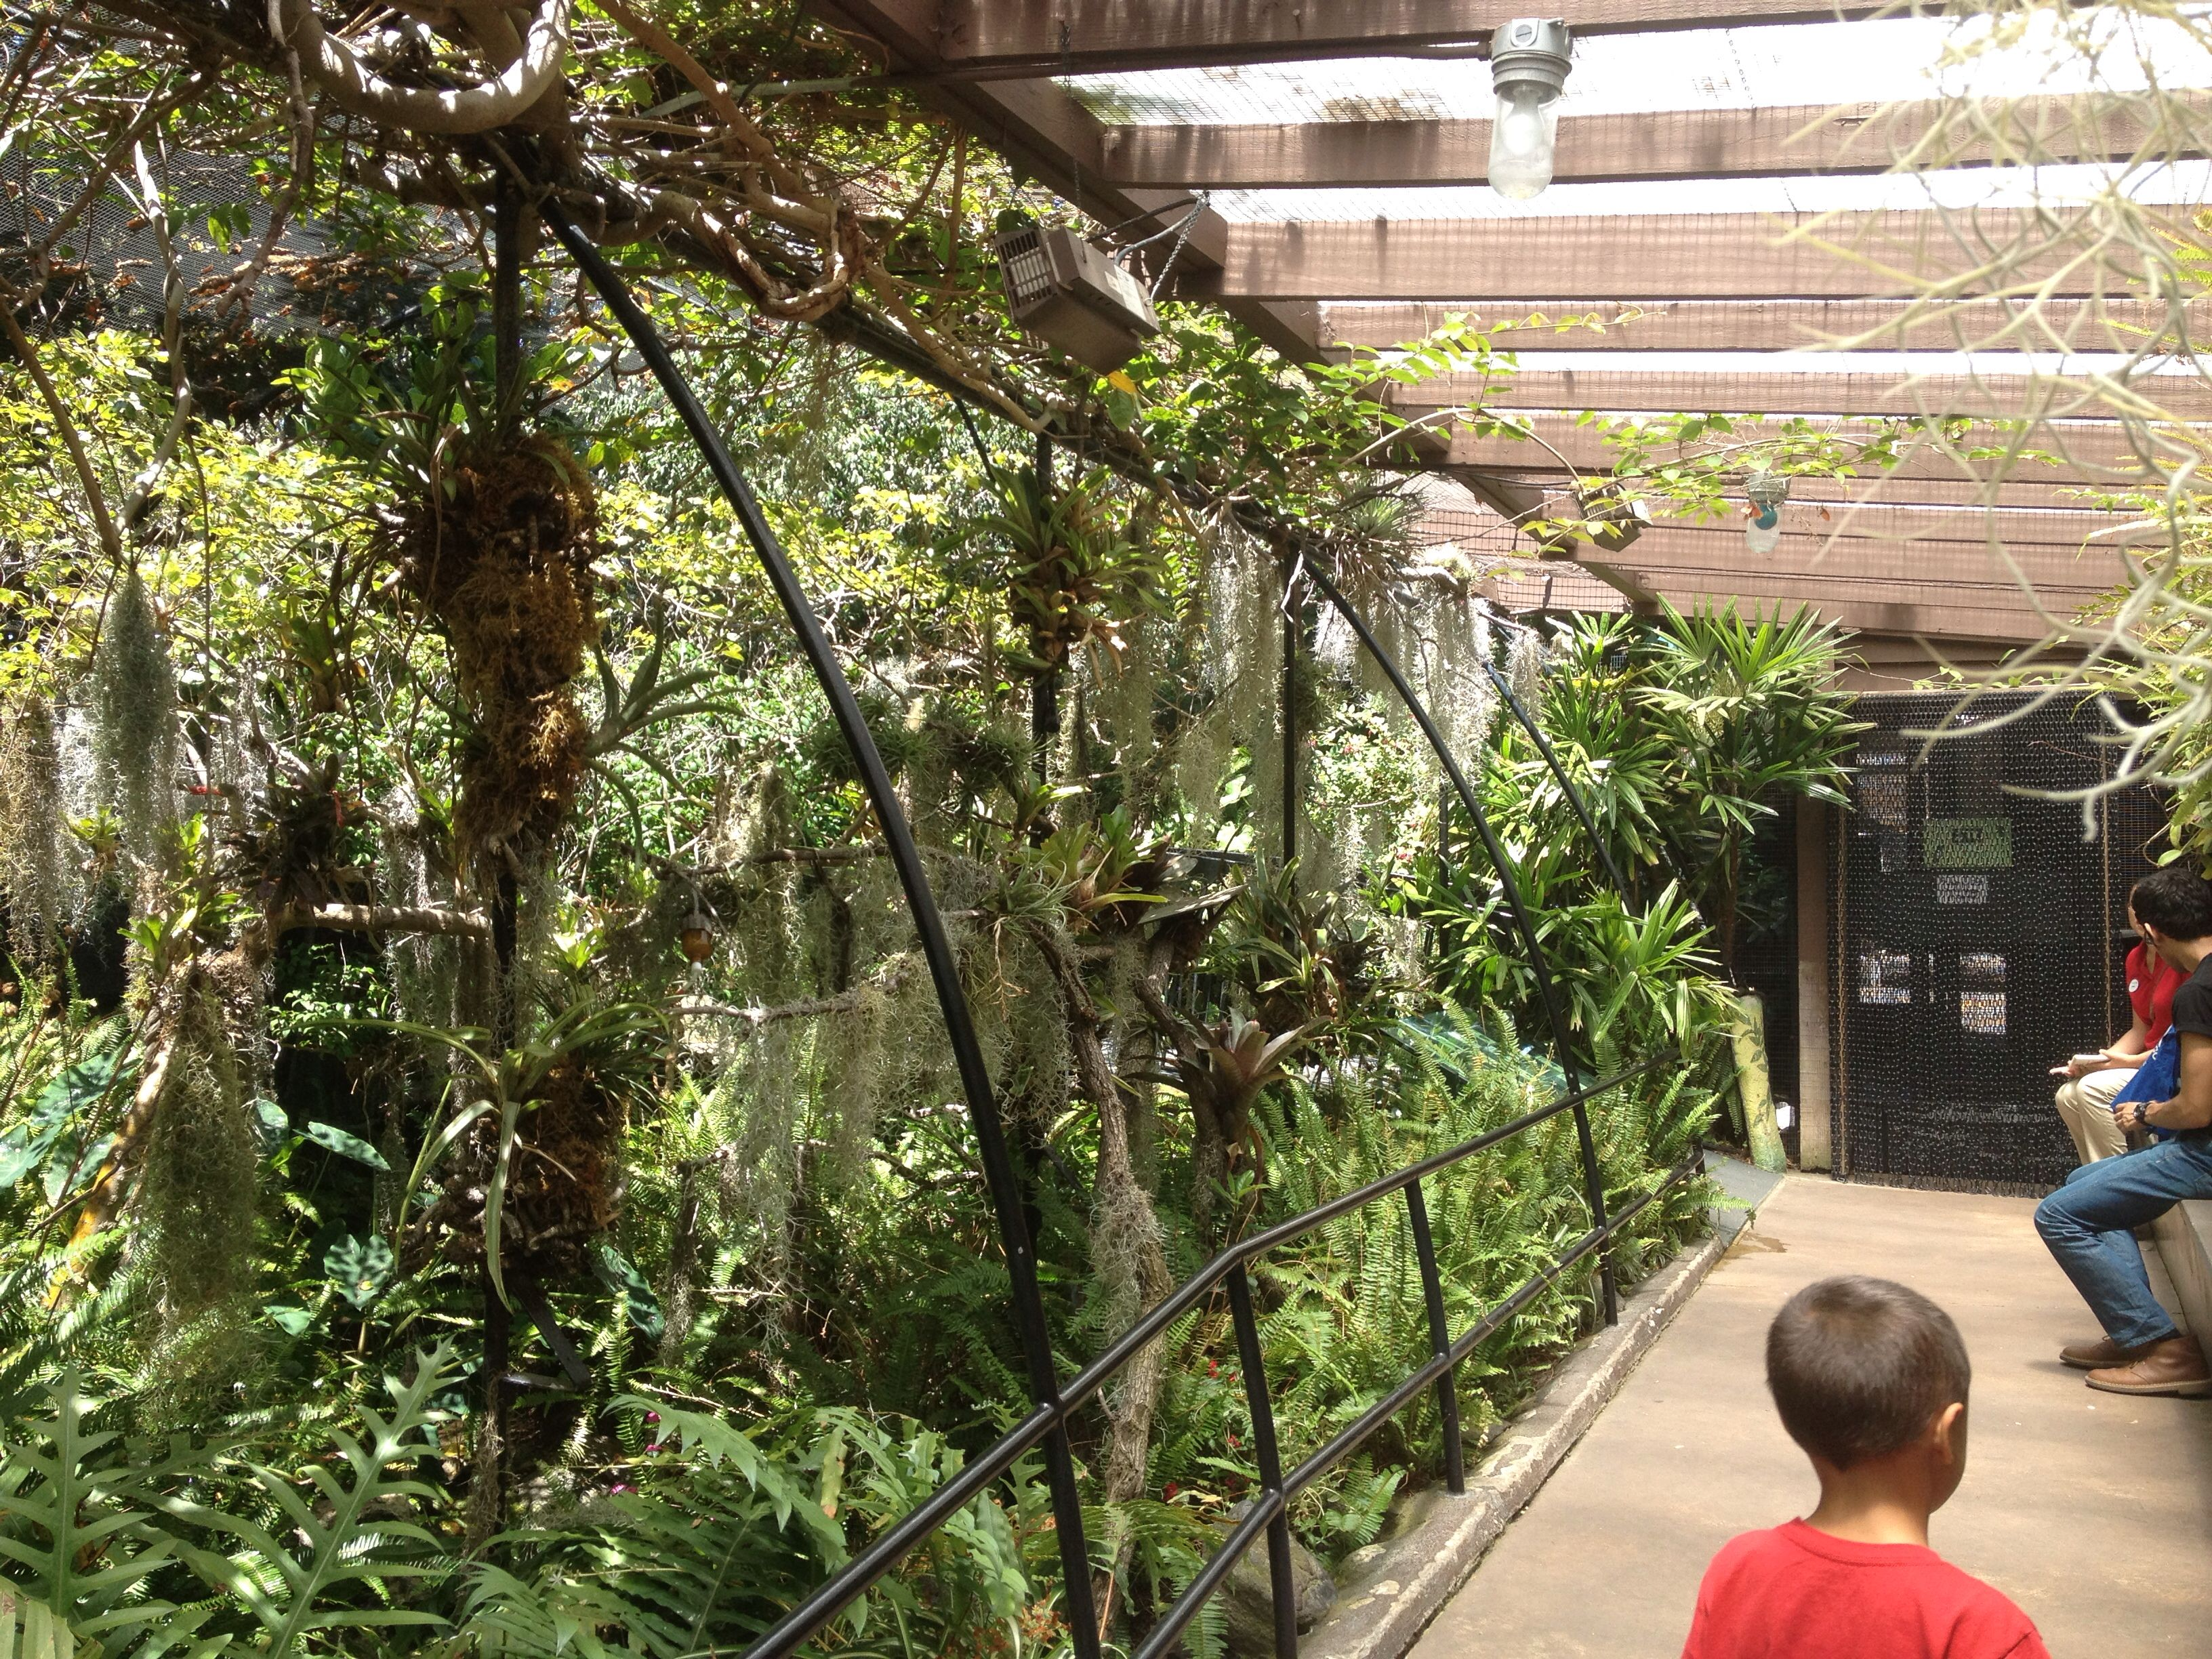 Been Here Done This I Was A Member For Many Years When I Lived In So Cal San Diego Zoo Inside A Tropical Aviary With Hummingbirds